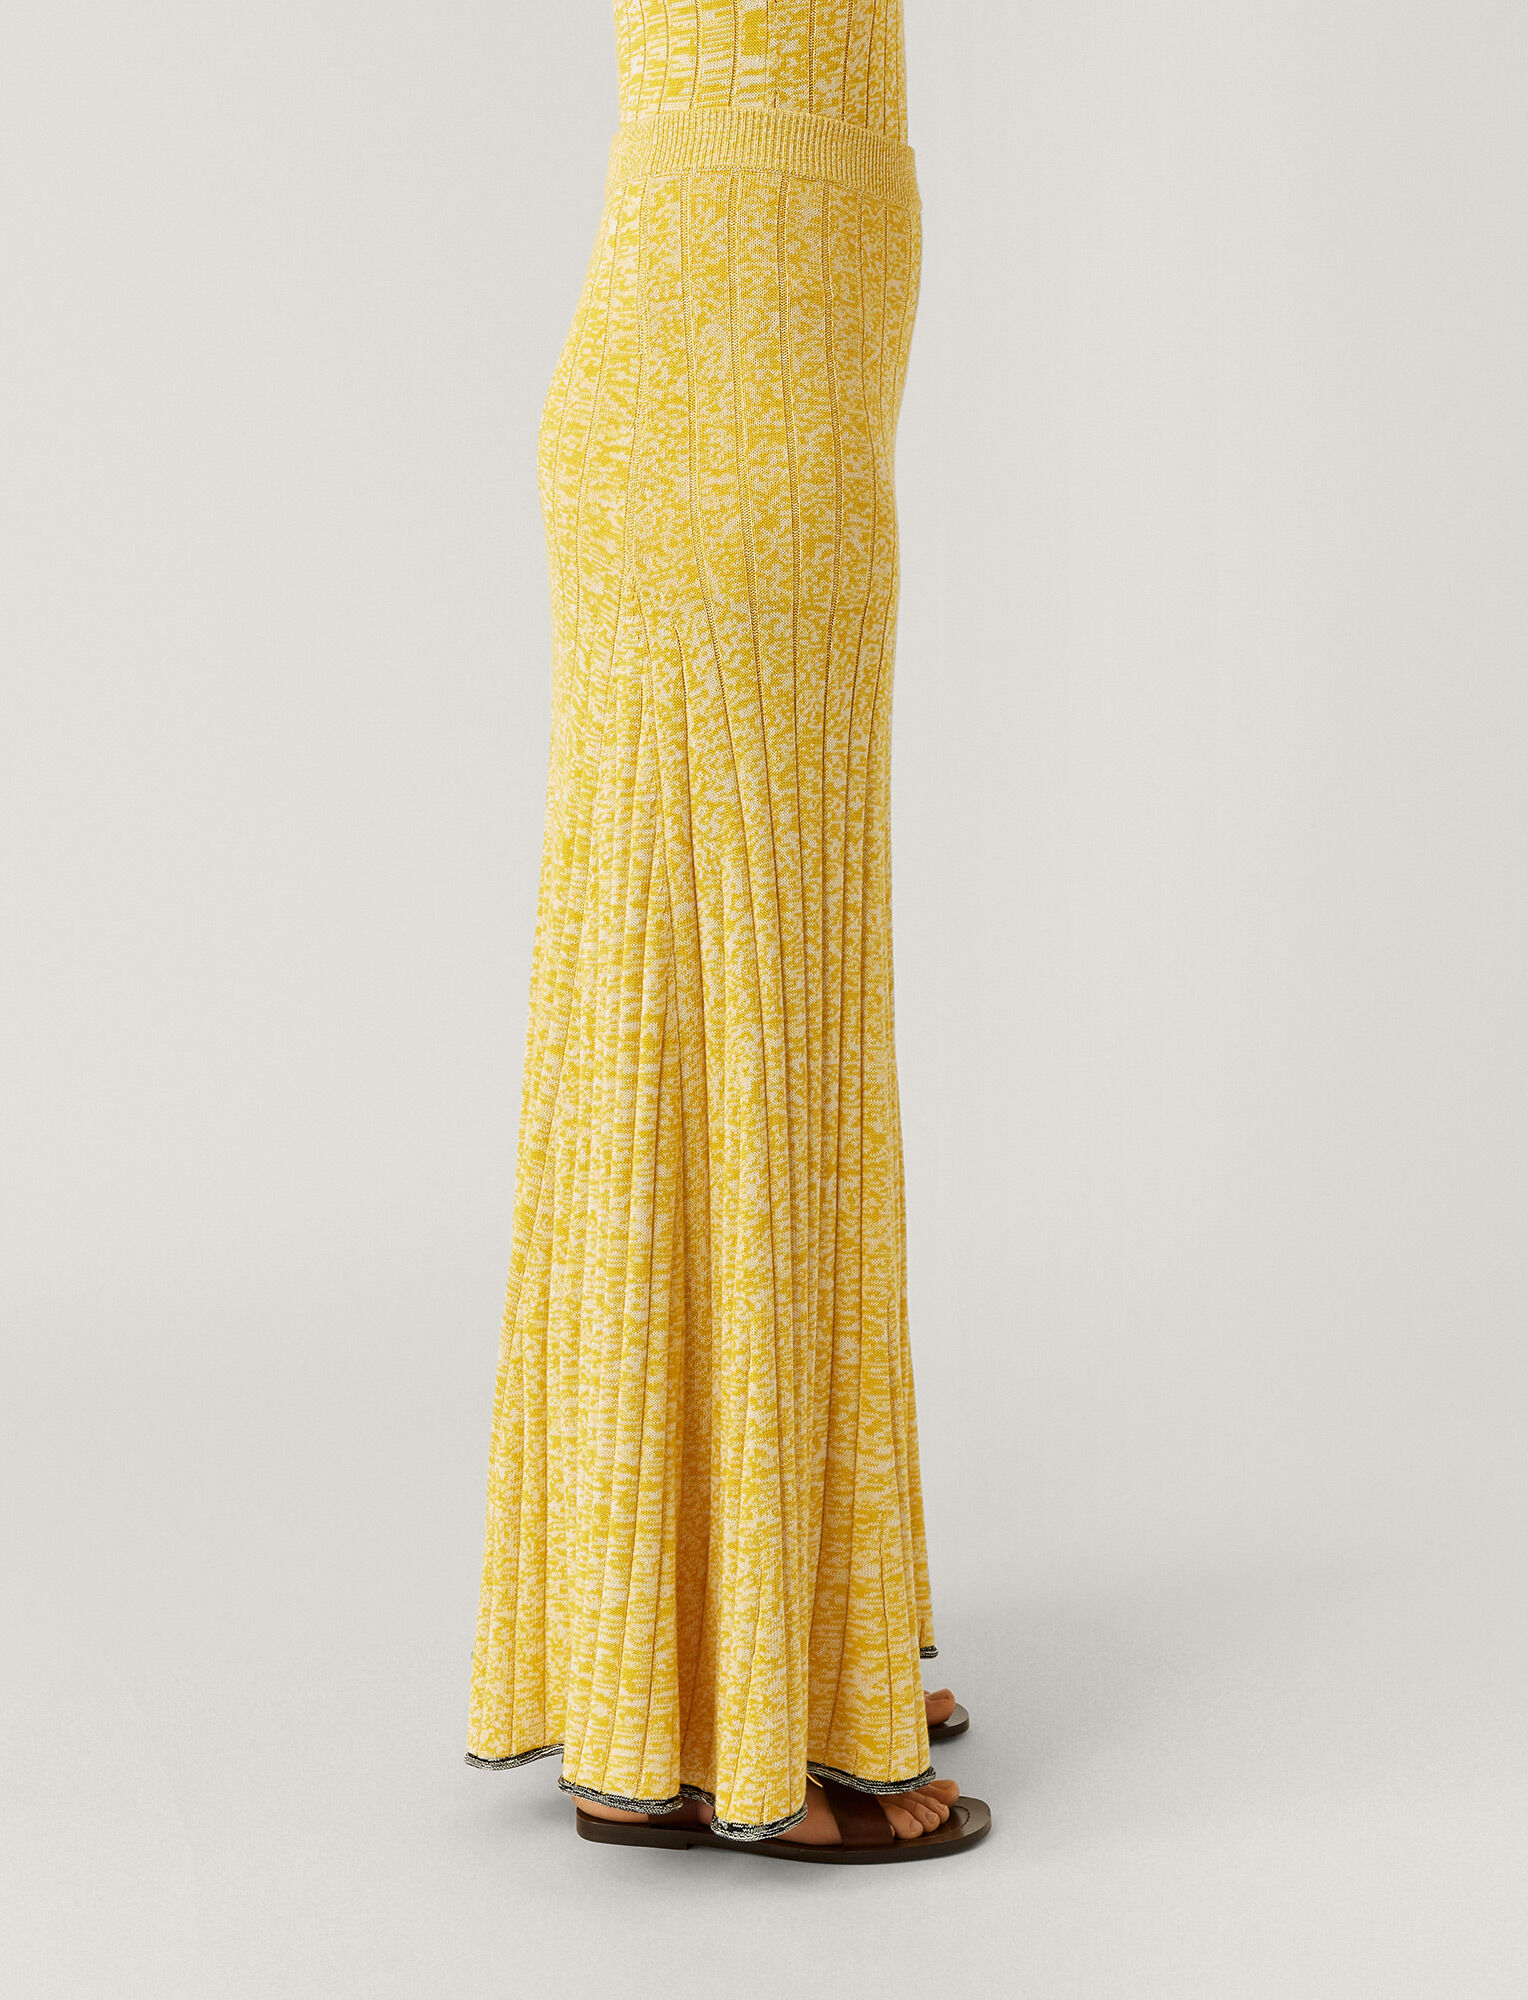 Joseph, Sally Cotton Viscose Rib Skirt, in YELLOW